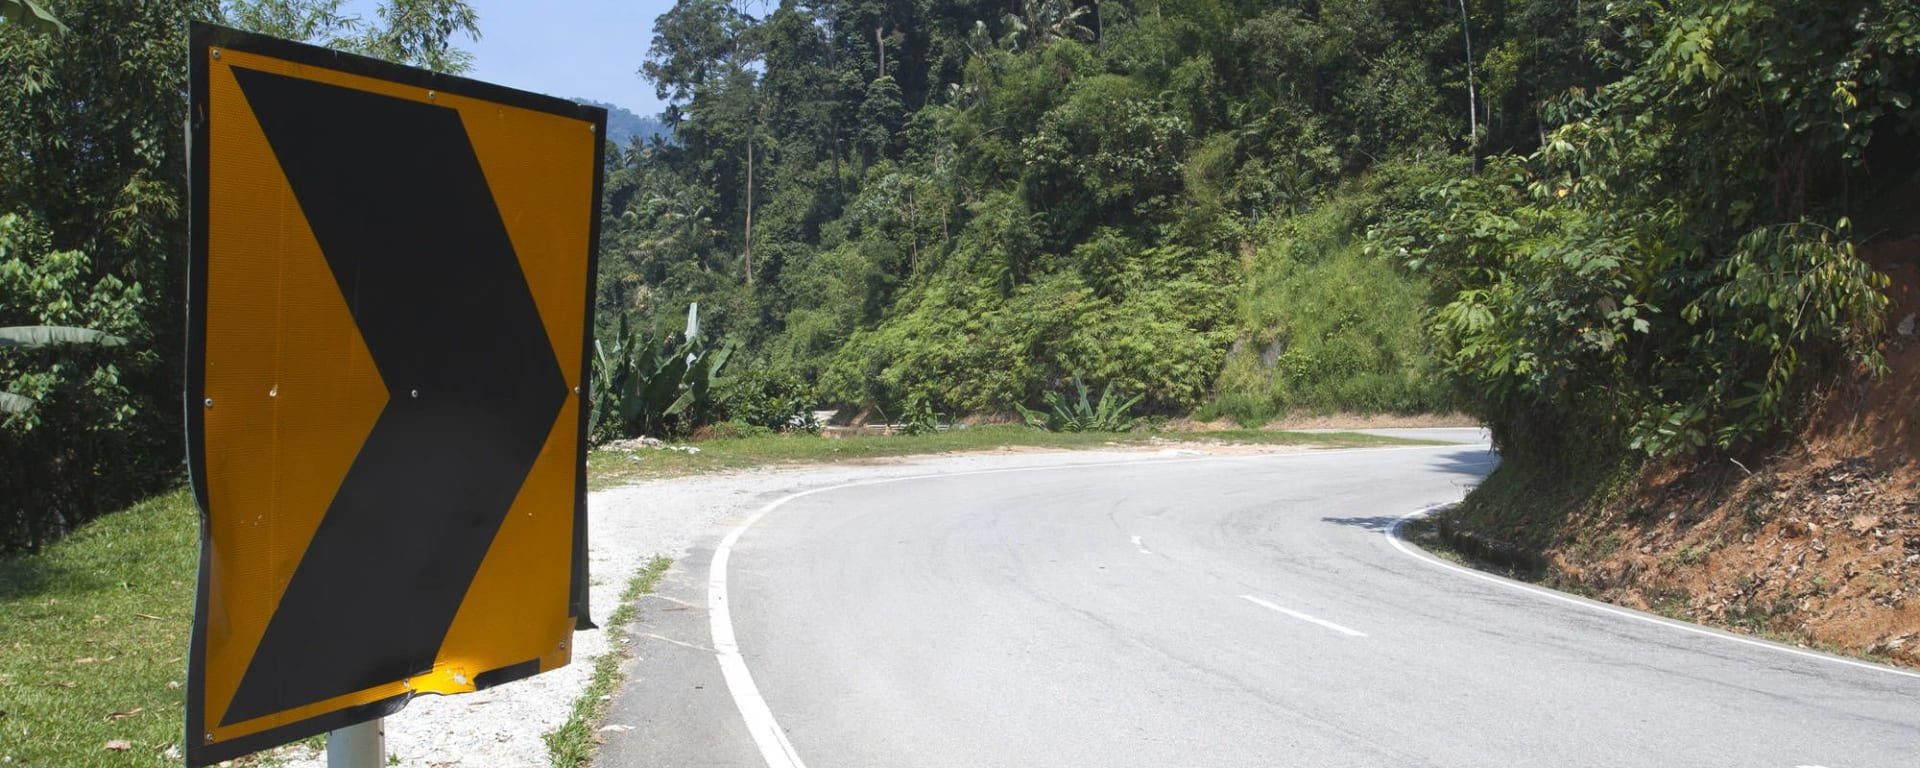 Malaysia - Grosse Mietwagenrundreise - SIN-PEN ab Kuala Lumpur: Malaysia Cameron Highlands Road Sign